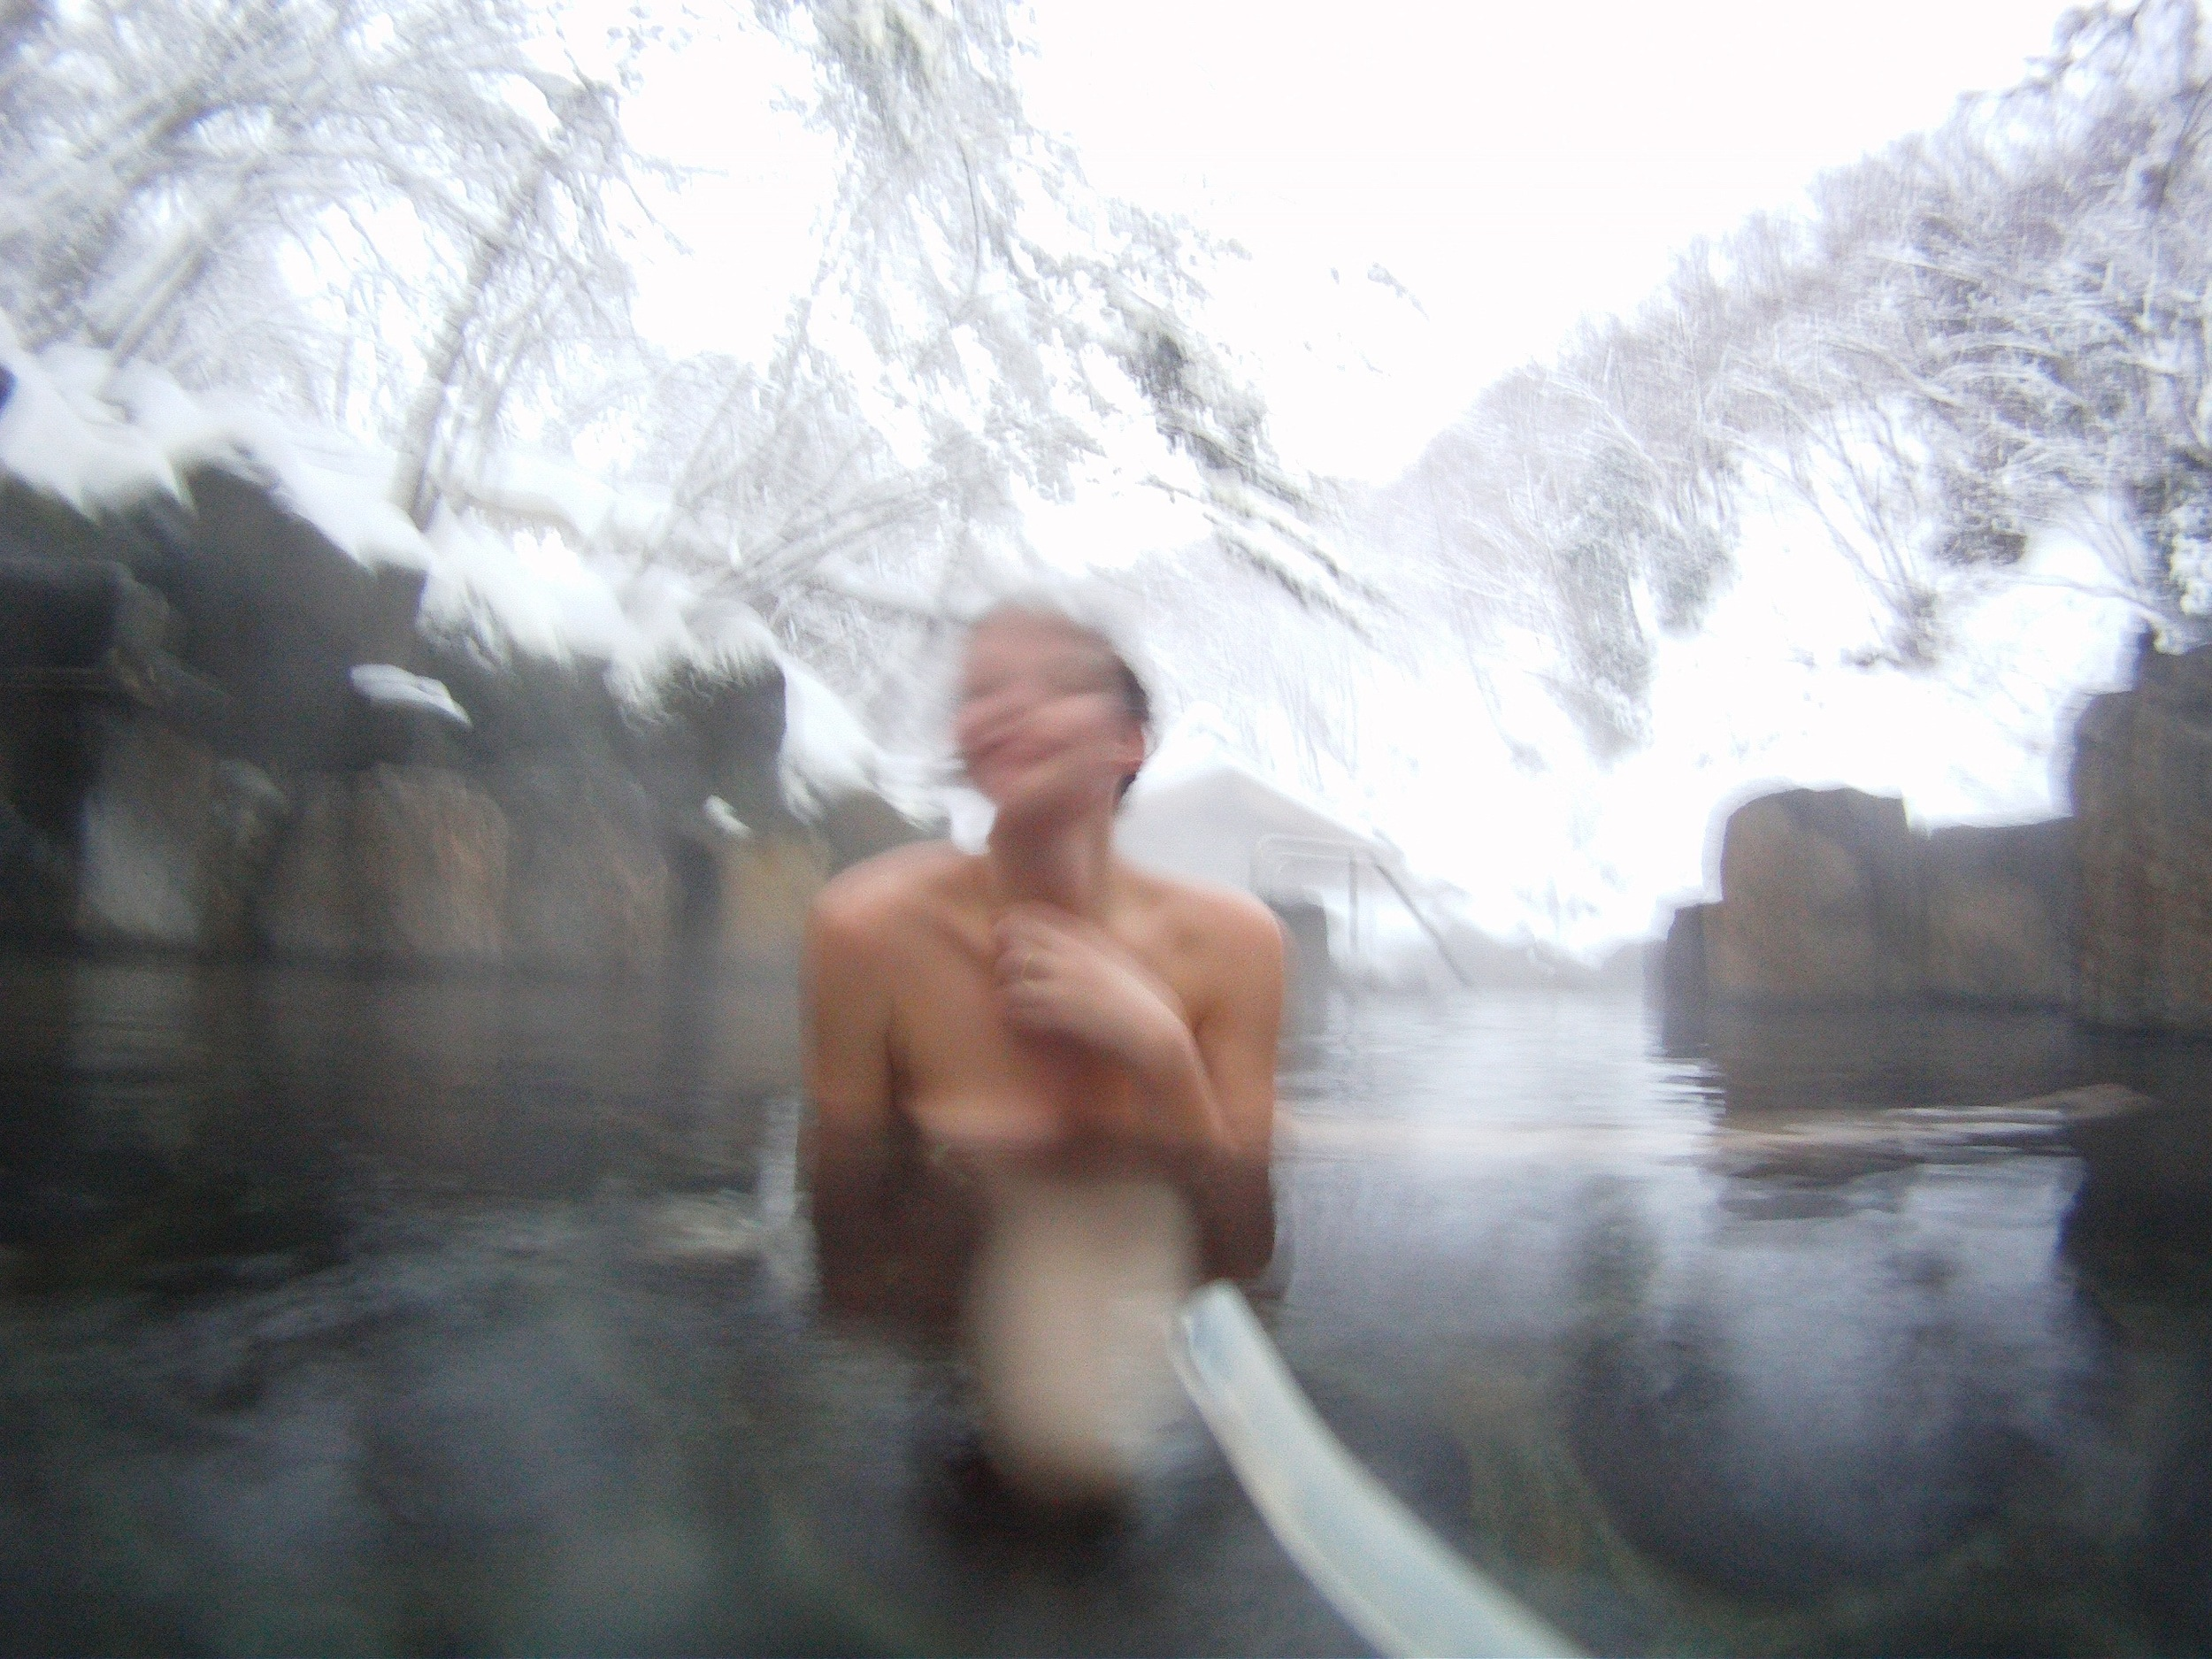 me soaking in the healing waters at Takaragawa Onsen in Japan.